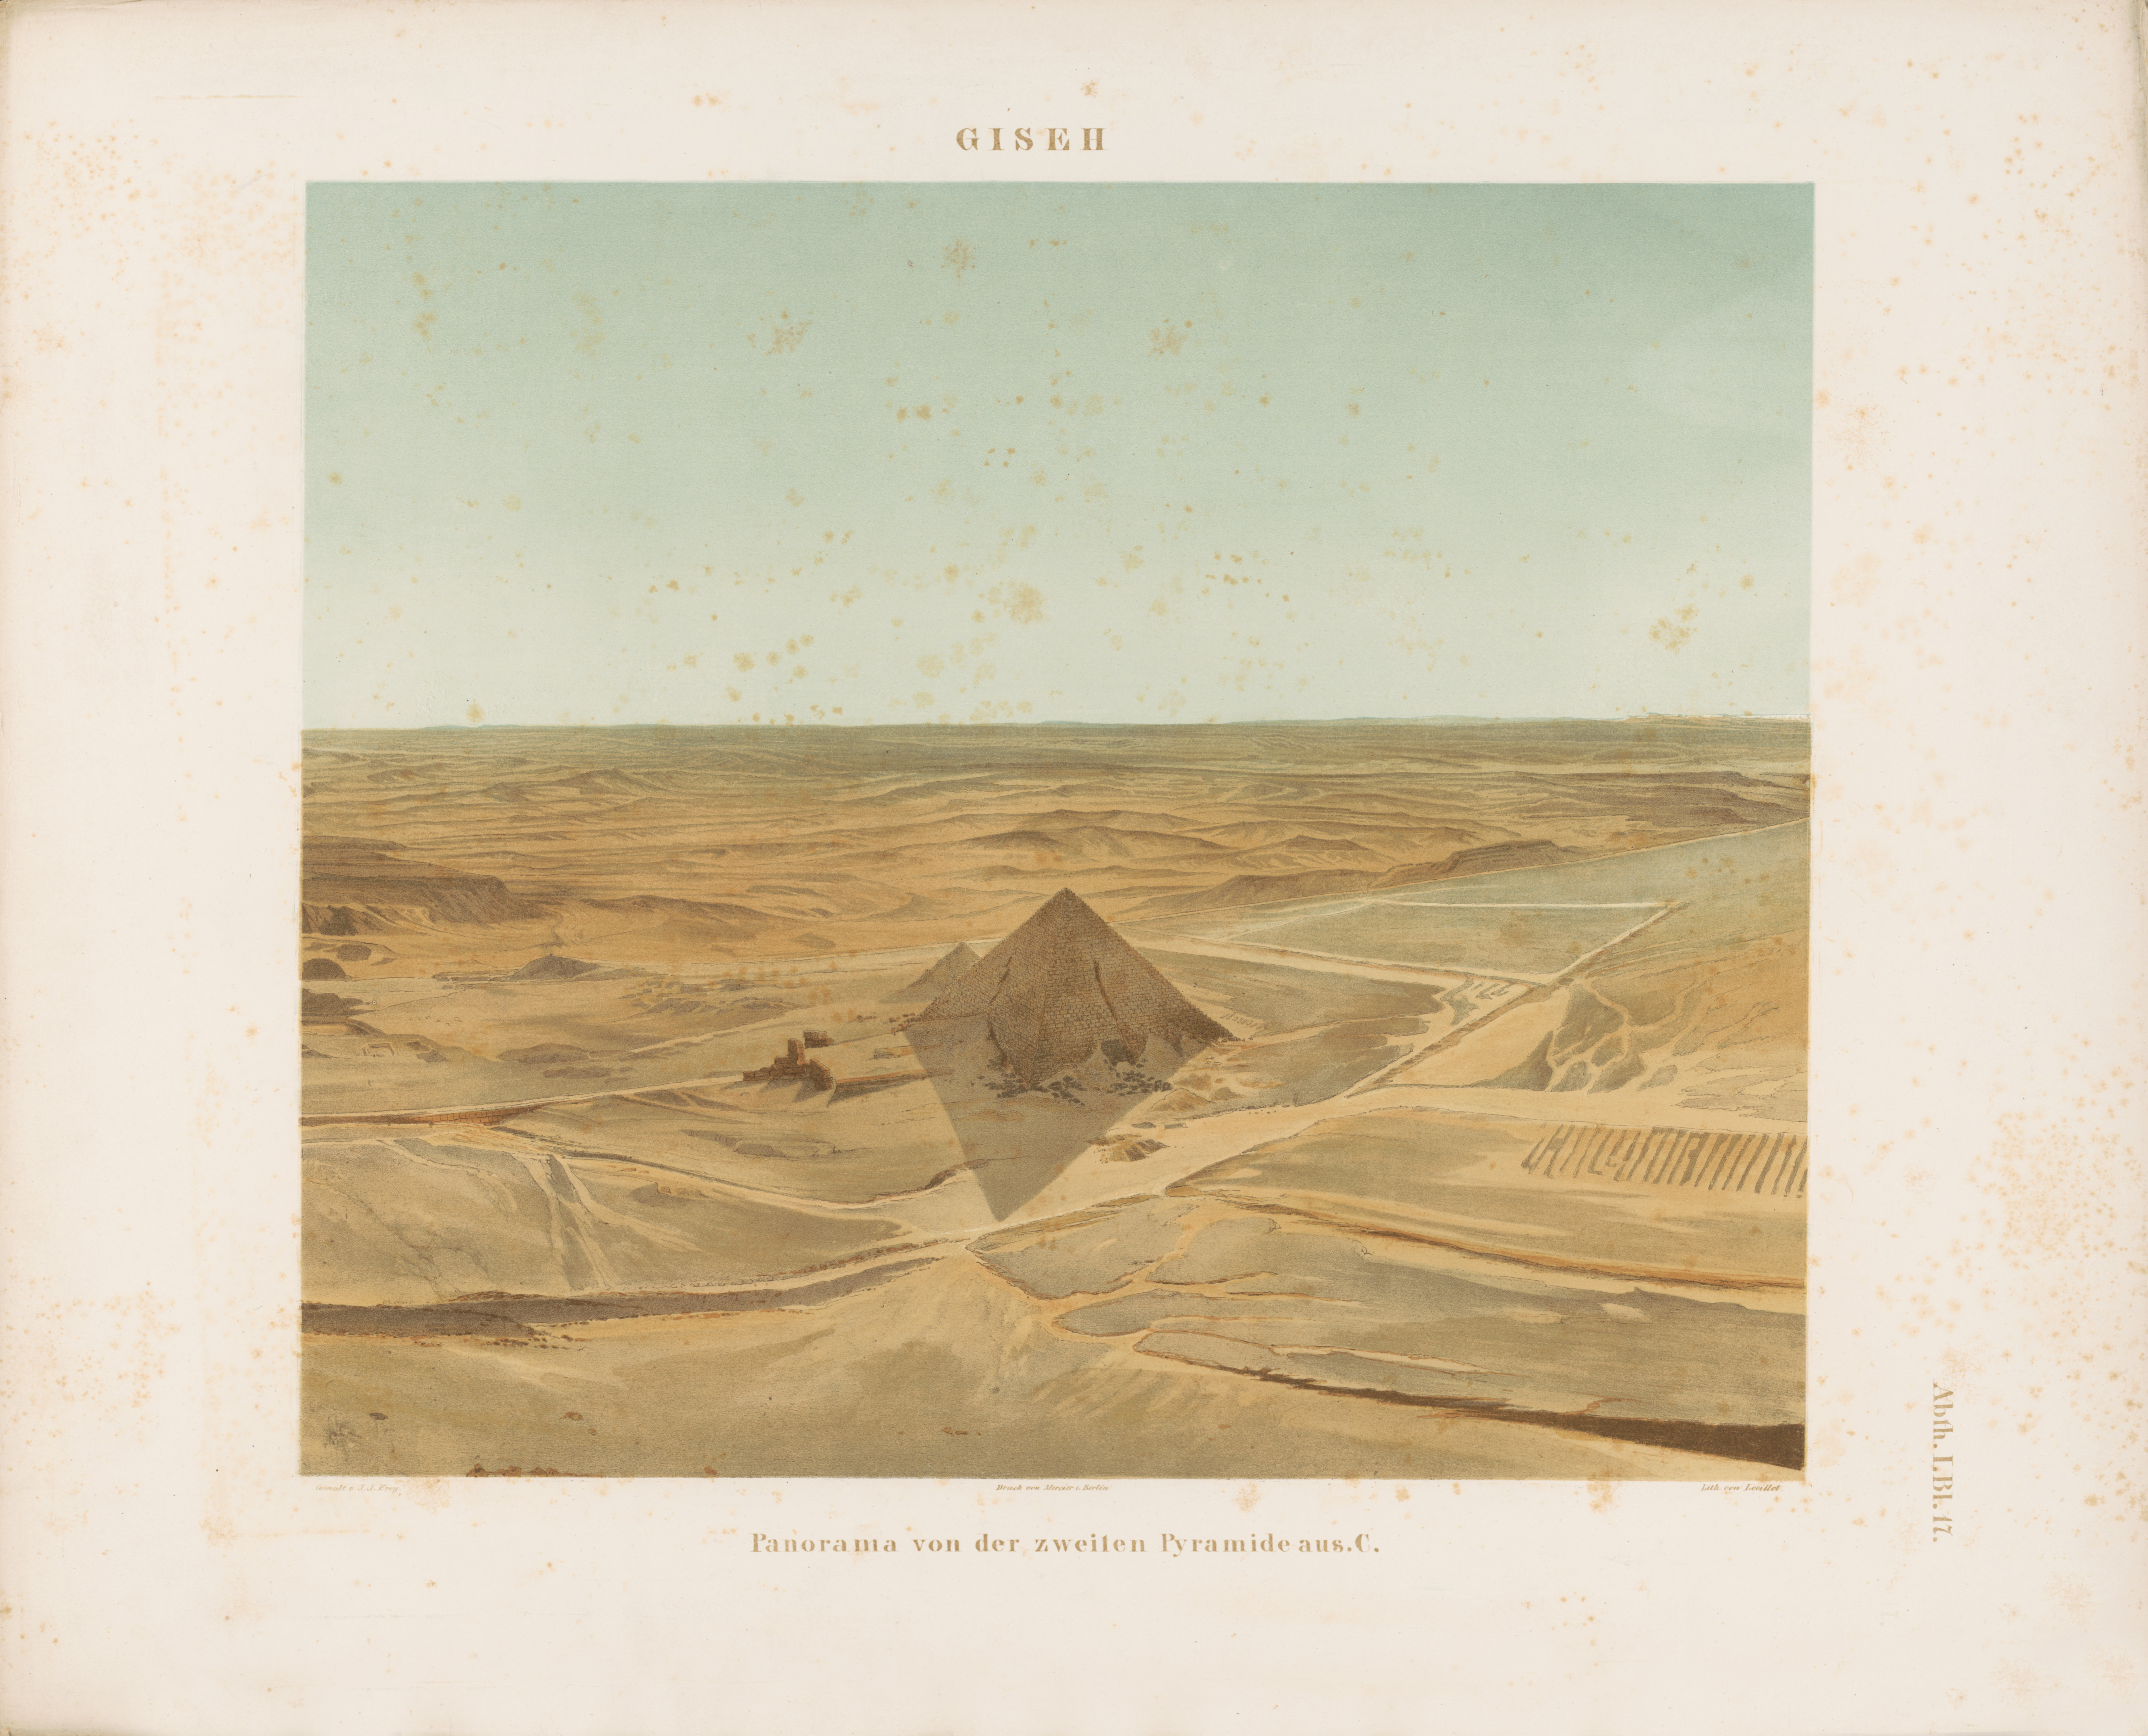 Drawings: General view from Khafre Pyramid, looking SE towards Menkaure Pyramid